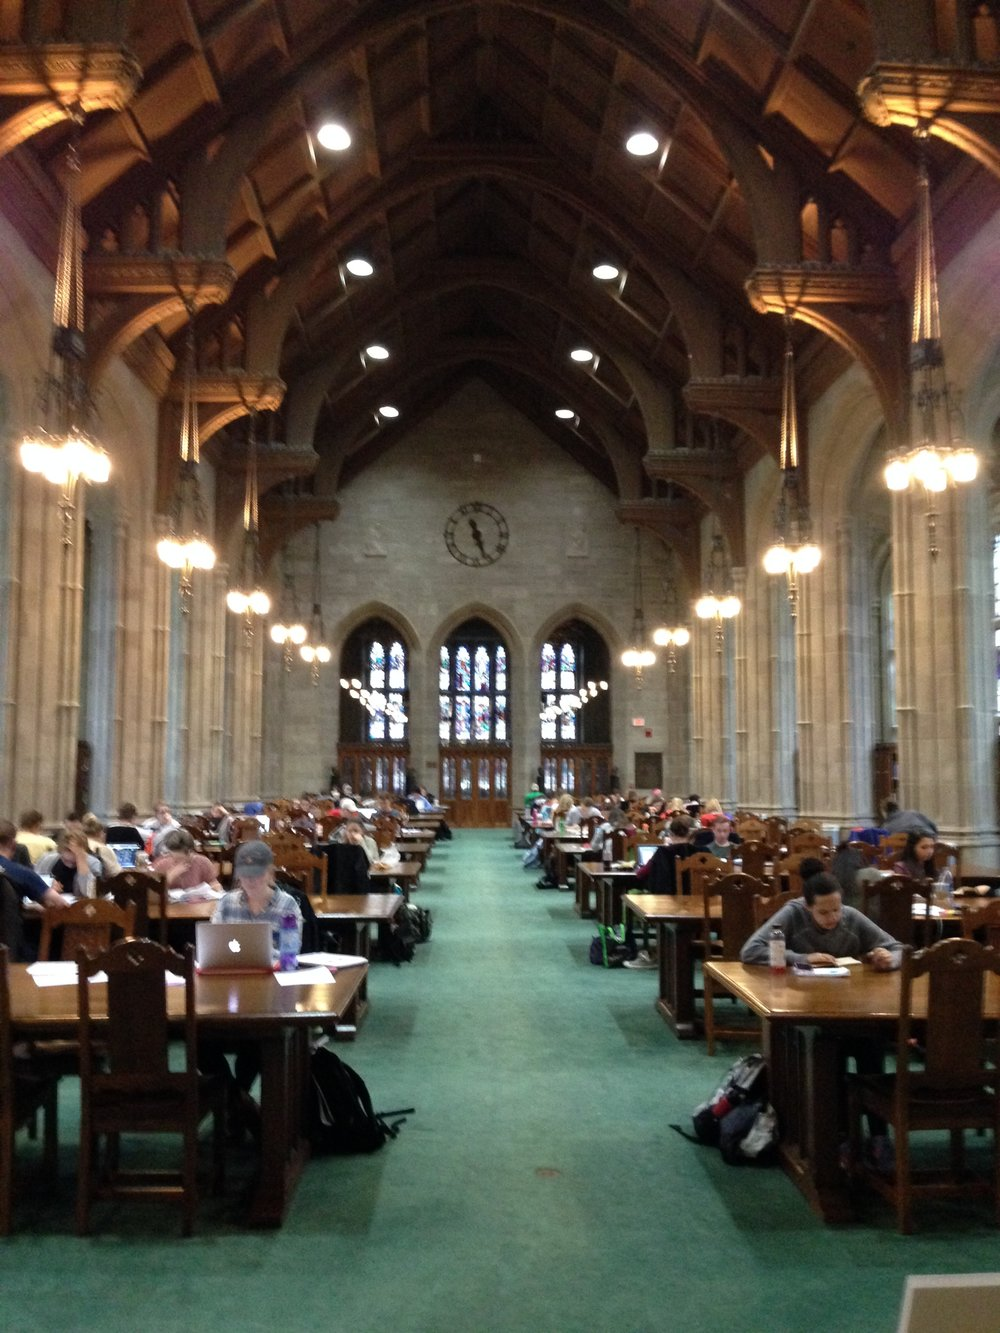 BC'S GARGAN HALL (READING ROOM